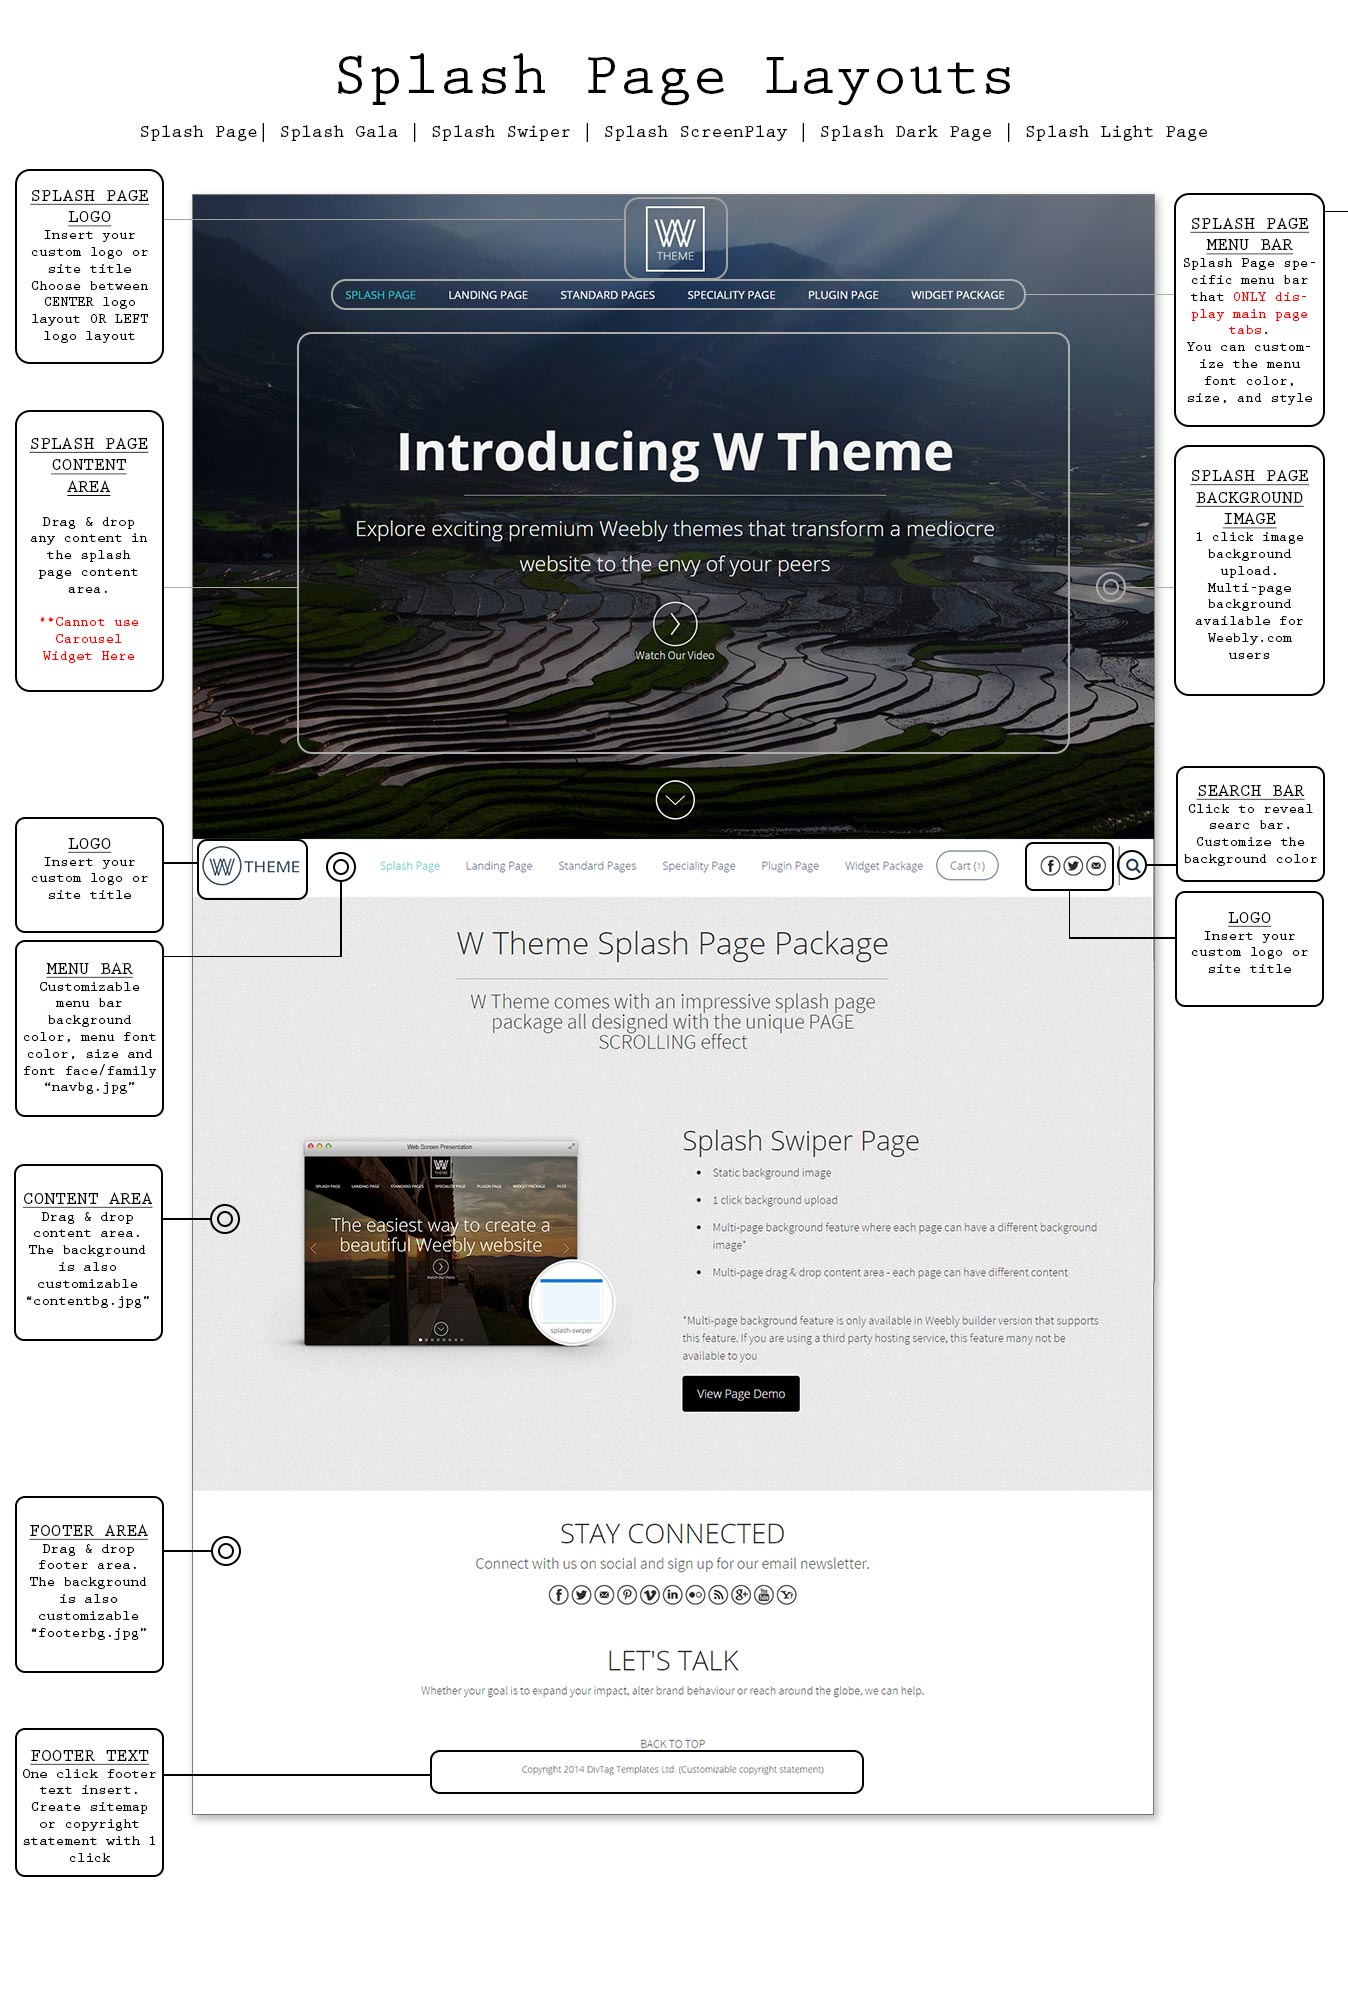 W theme premium weebly templates and weebly themes for Wordpress splash page template